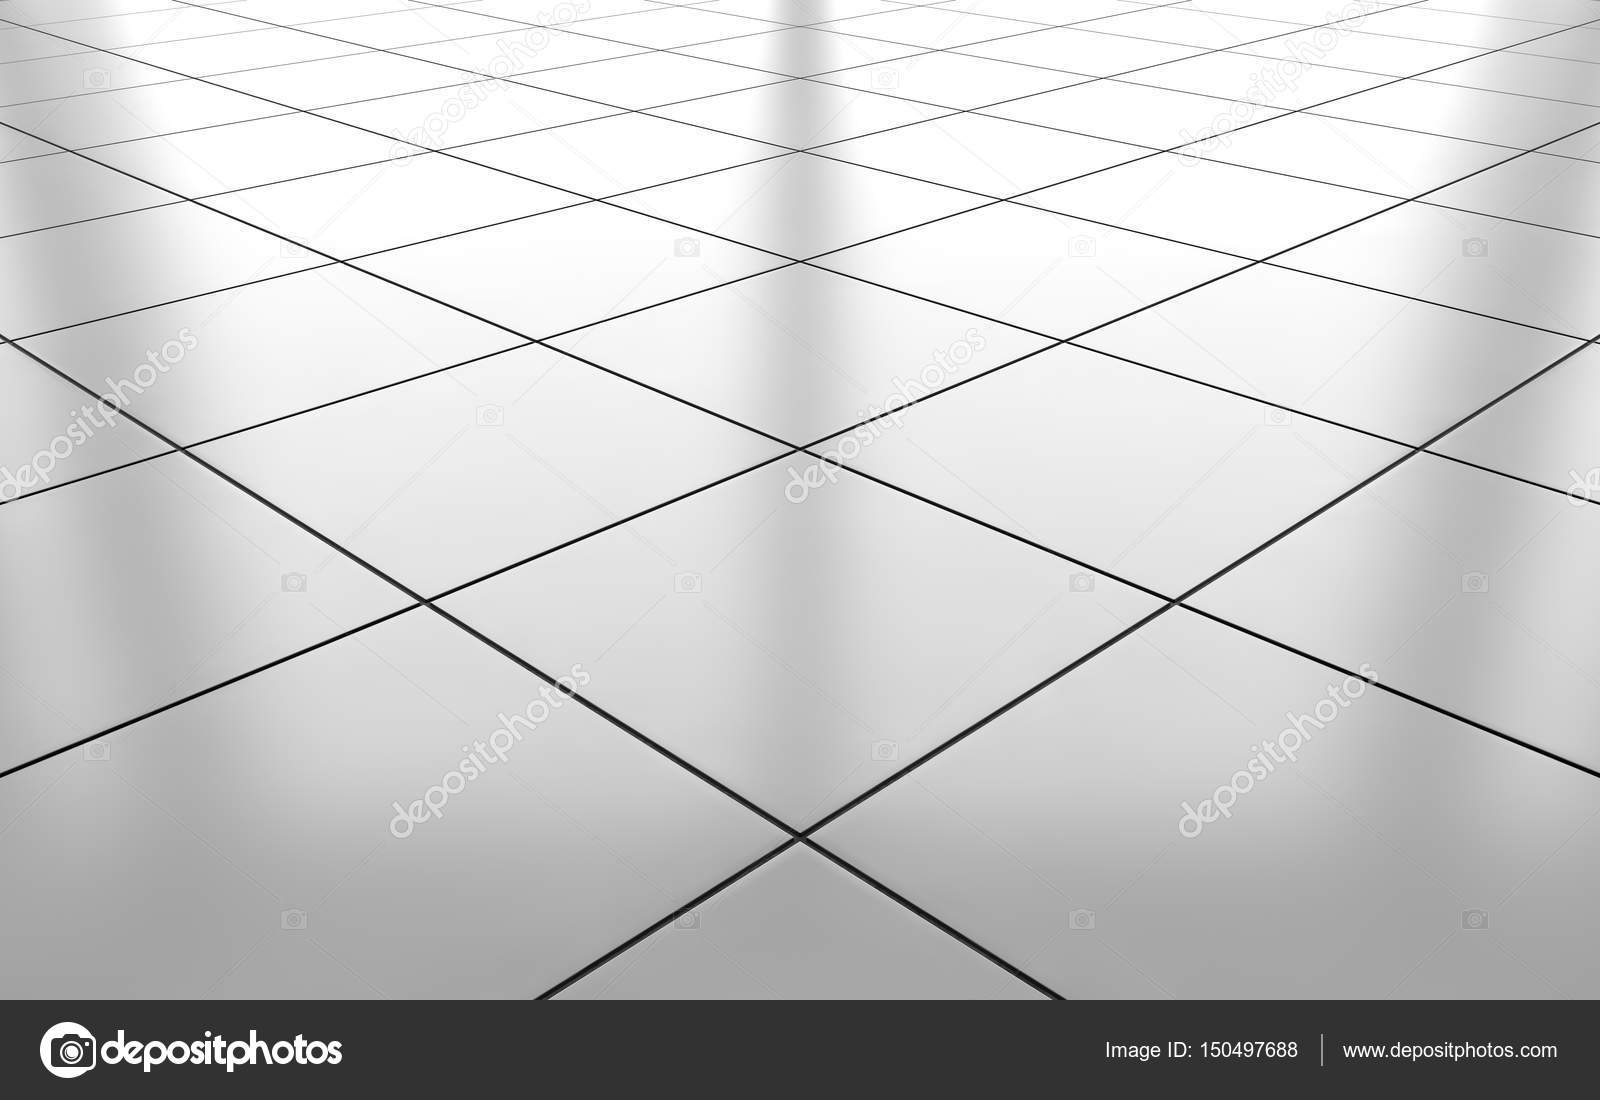 White glossy ceramic tile floor background 3d rendering stock white glossy ceramic tile floor background 3d rendering stock photo dailygadgetfo Image collections